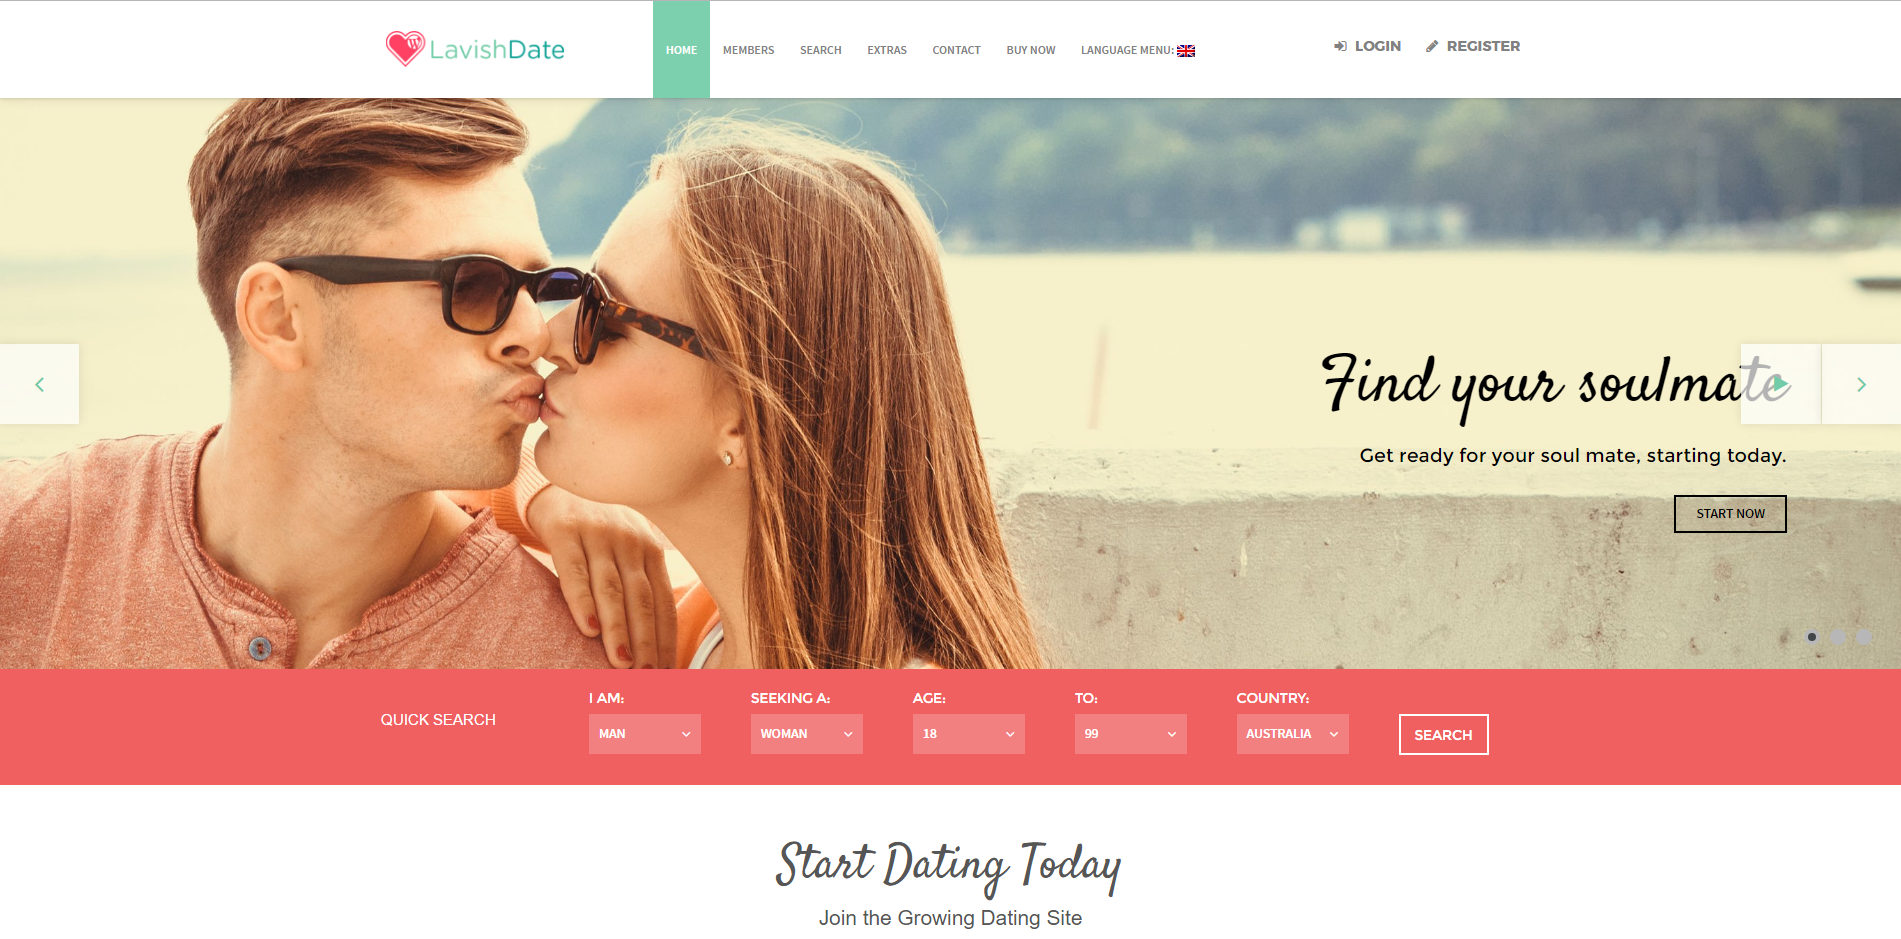 dating sites for millionaires What does seeking millionaire have to offer compare all the features of this dating site and its competitors free tips for dating millionaires successfully.